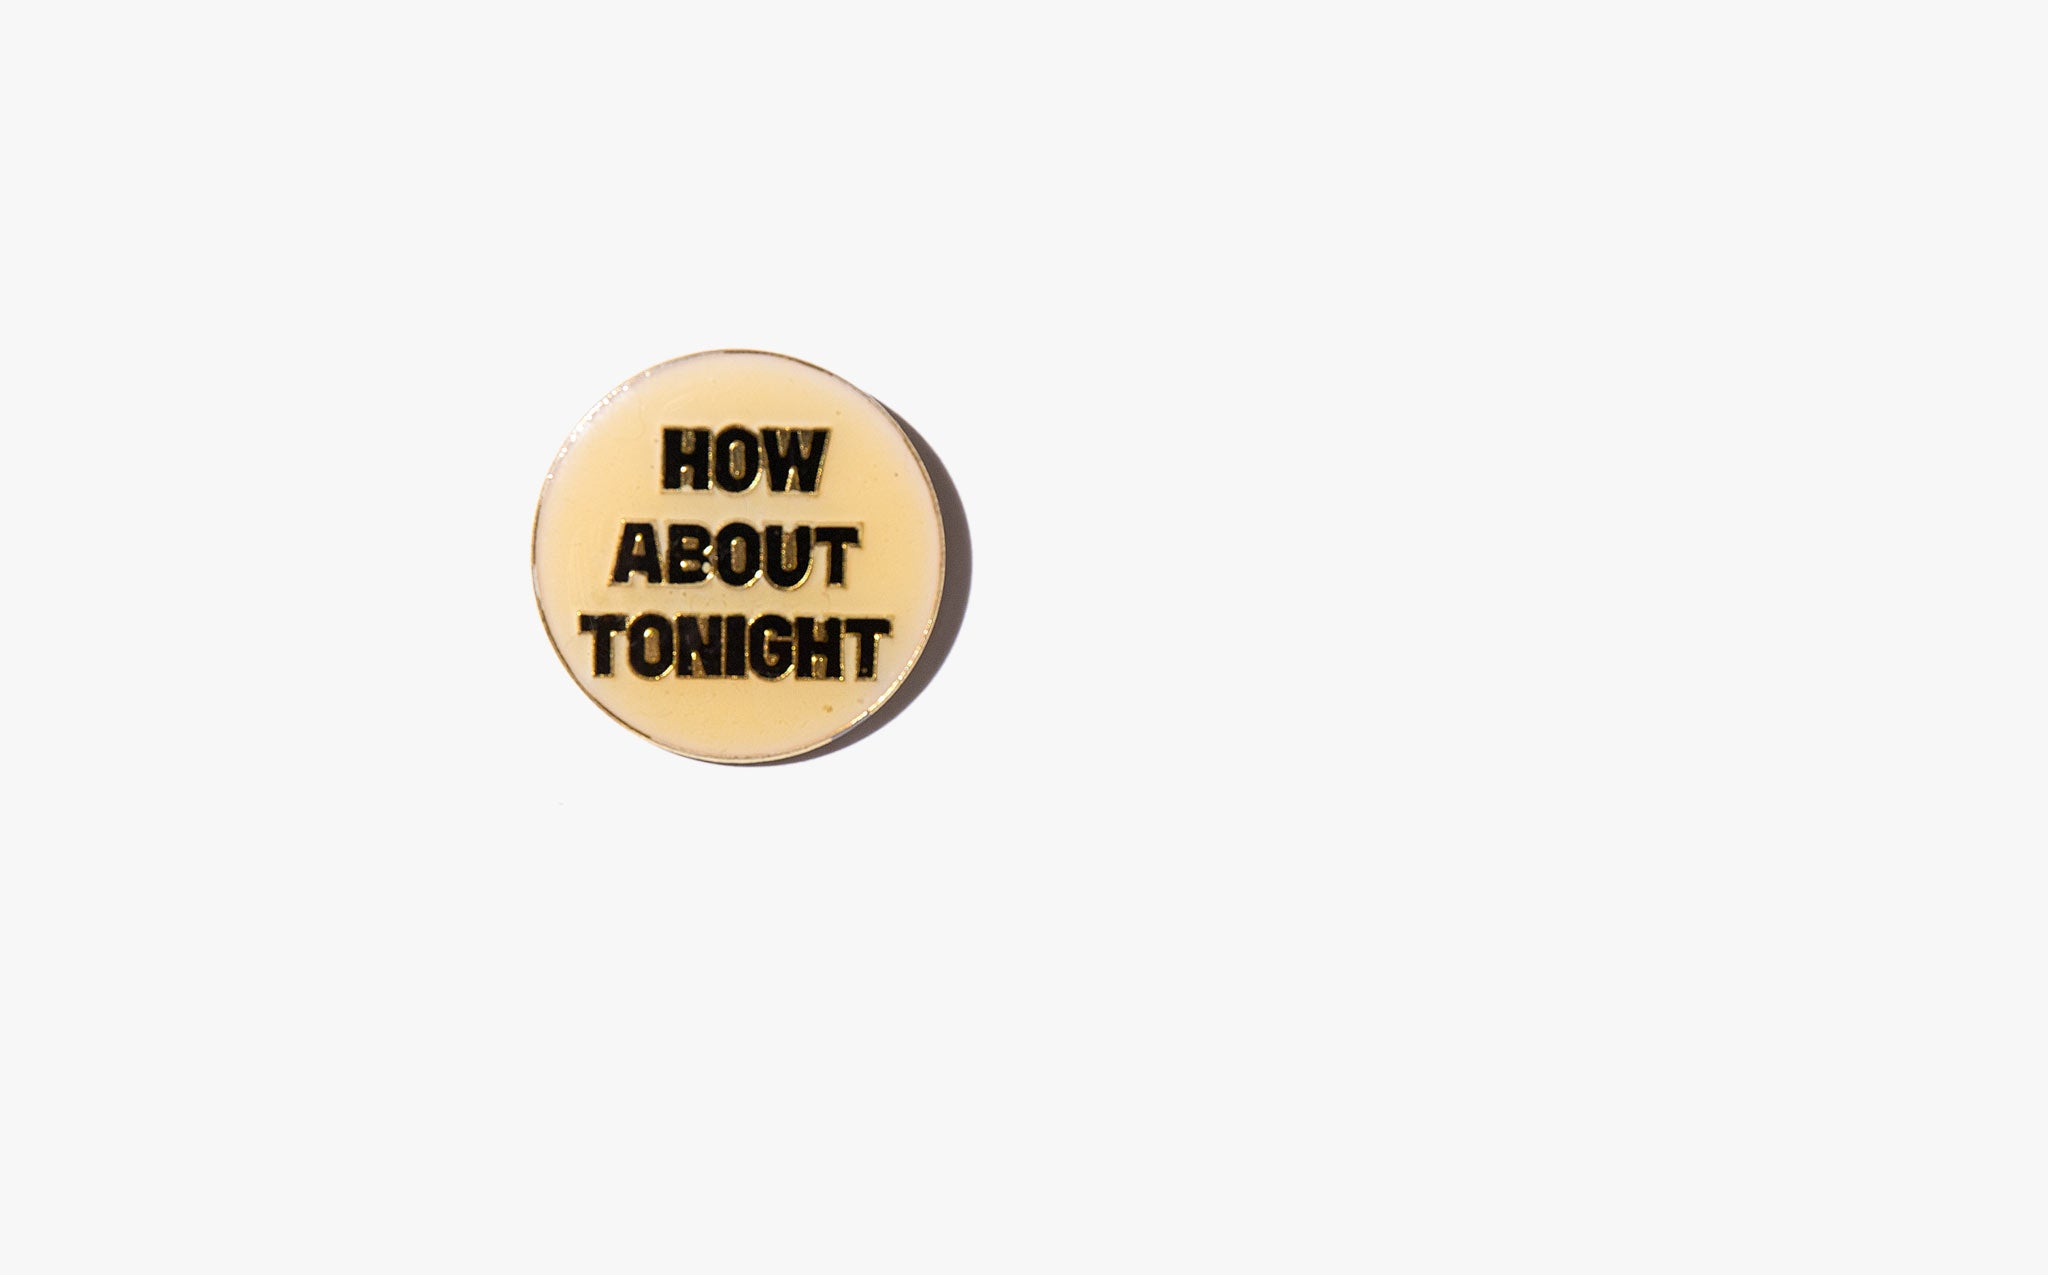 How About Tonight Vintage Pin